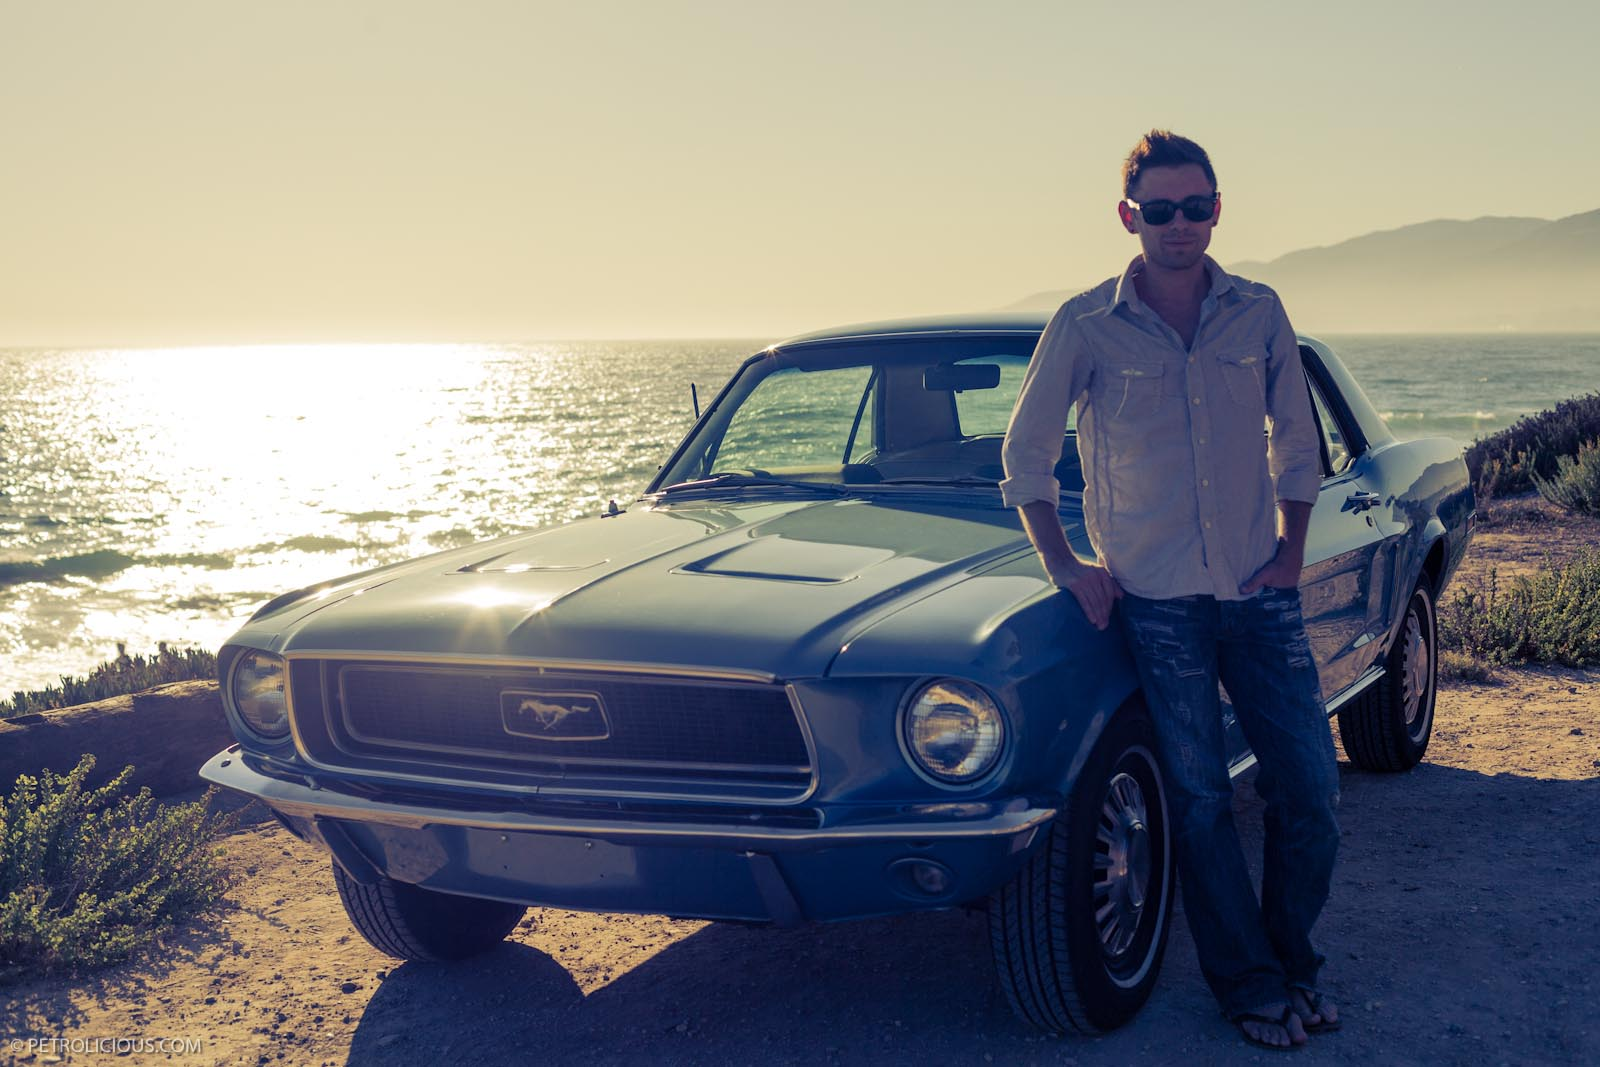 68 Mustang For Sale >> Cody's Ford Mustang • Petrolicious